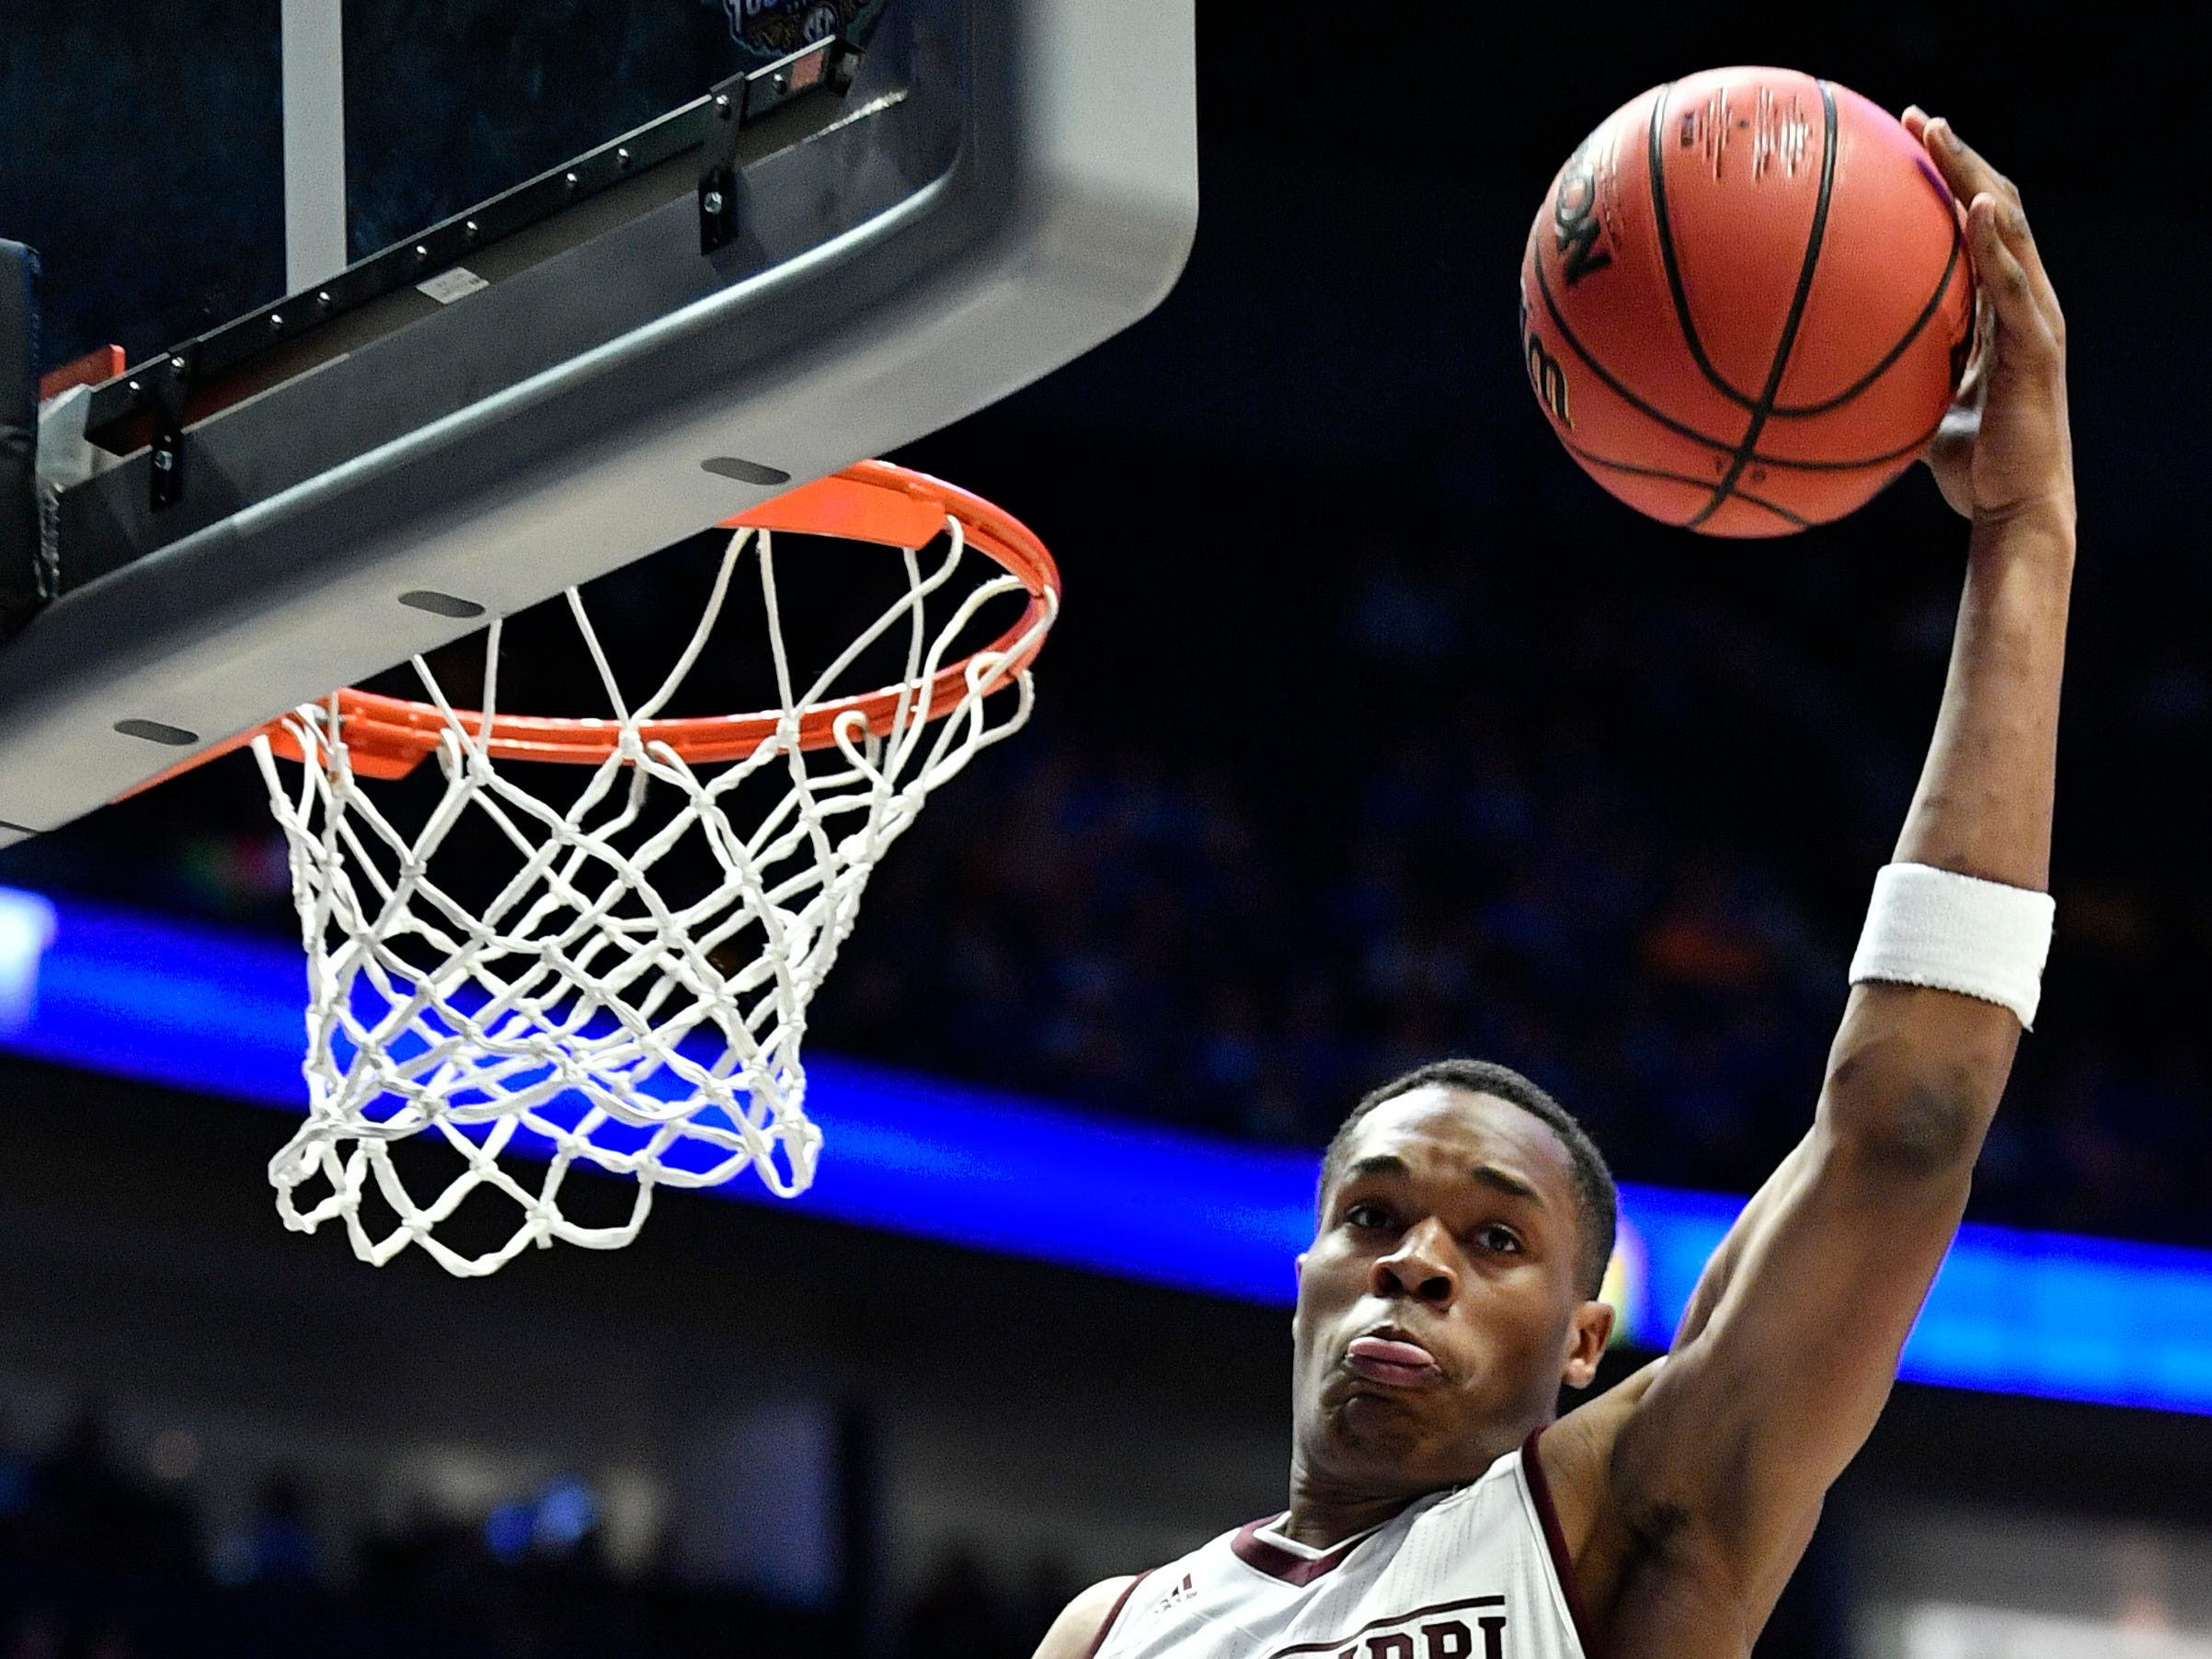 Mississippi State guard Robert Woodard (12) grabs a rebounc during the first half of the SEC Men's Basketball Tournament game with Texas A&M at Bridgestone Arena in Nashville, Tenn., Thursday, March 14, 2019.